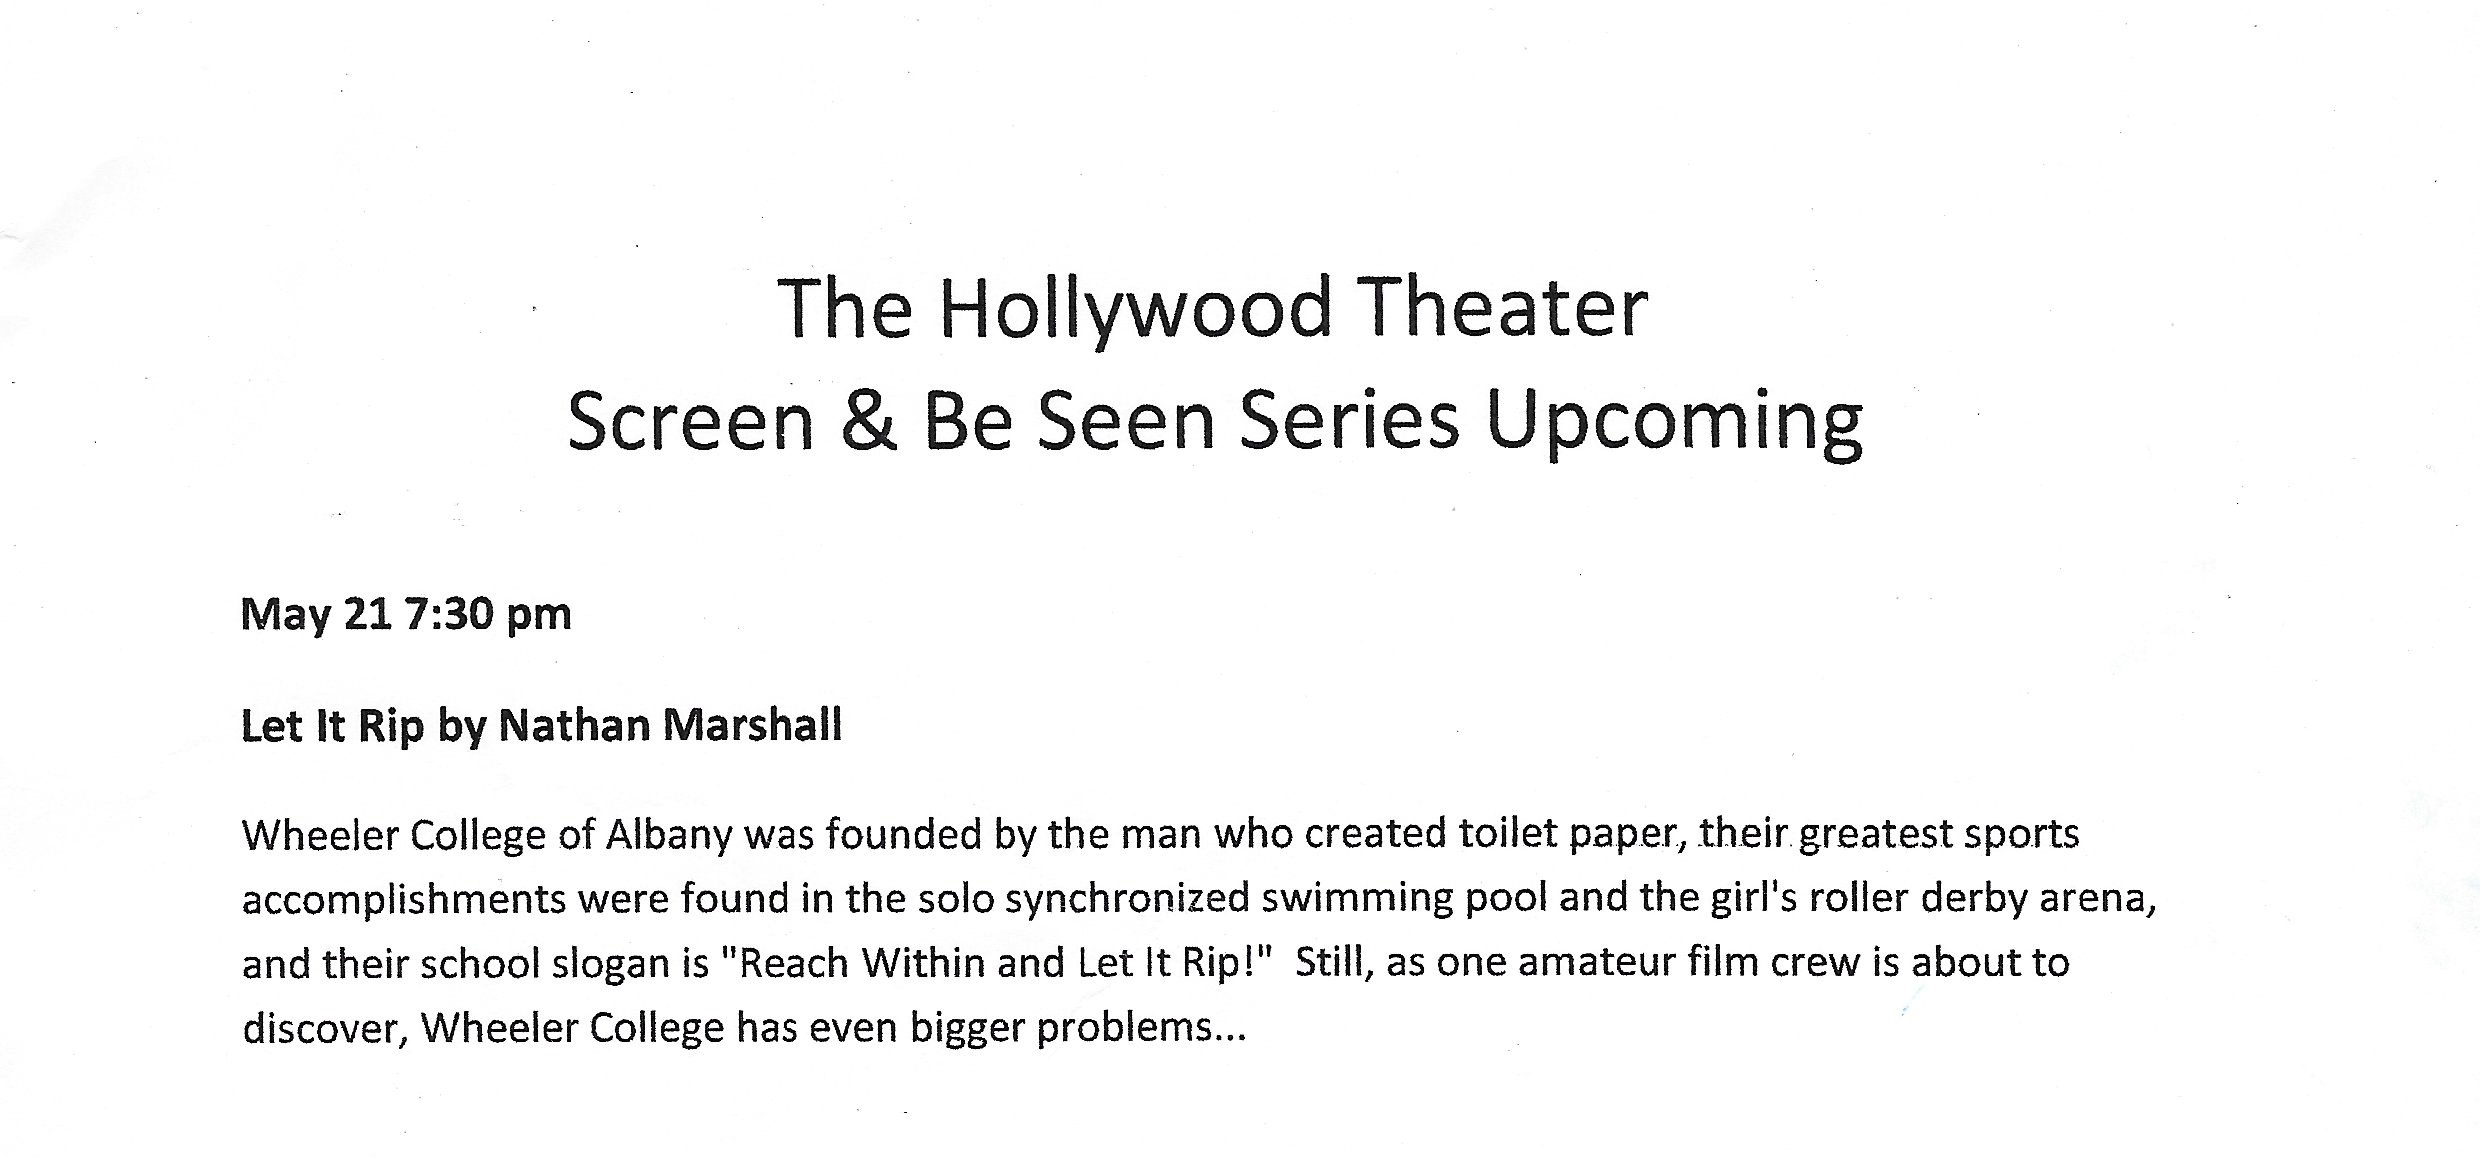 A BLURB ABOUT LET IT RIP FROM THE HOLLYWOOD THEATER